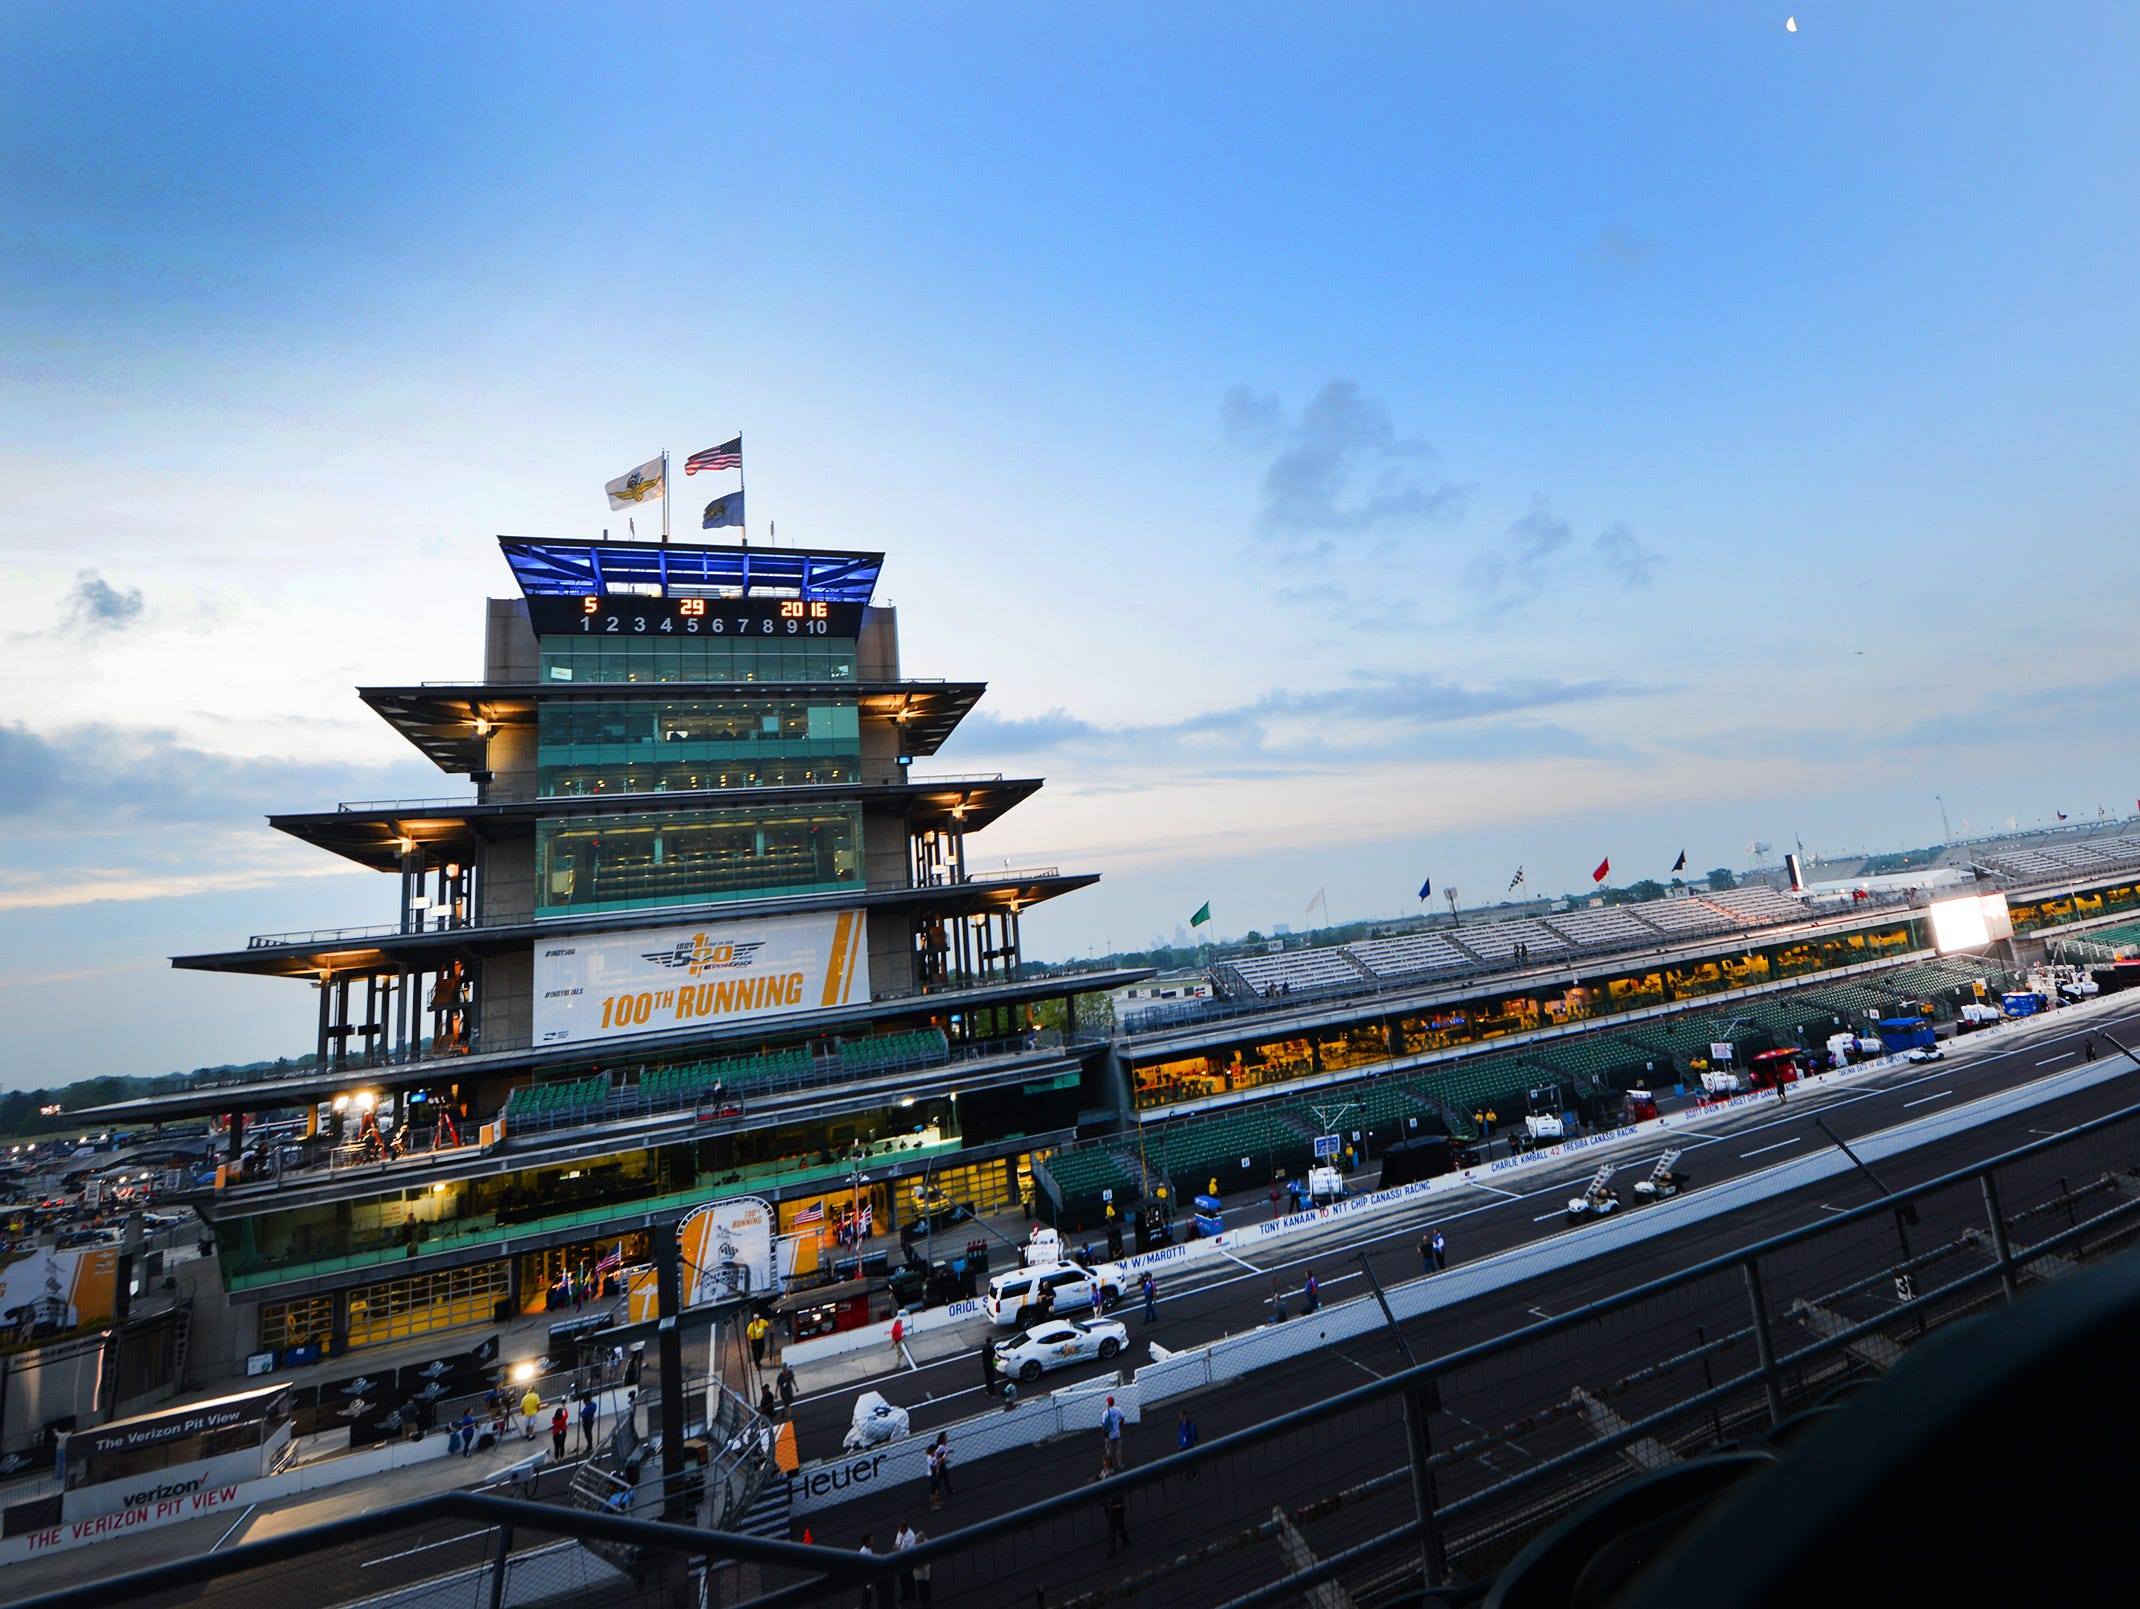 The sun rises over the Pagoda hours before the 100th running of the Indianapolis 500 last May.